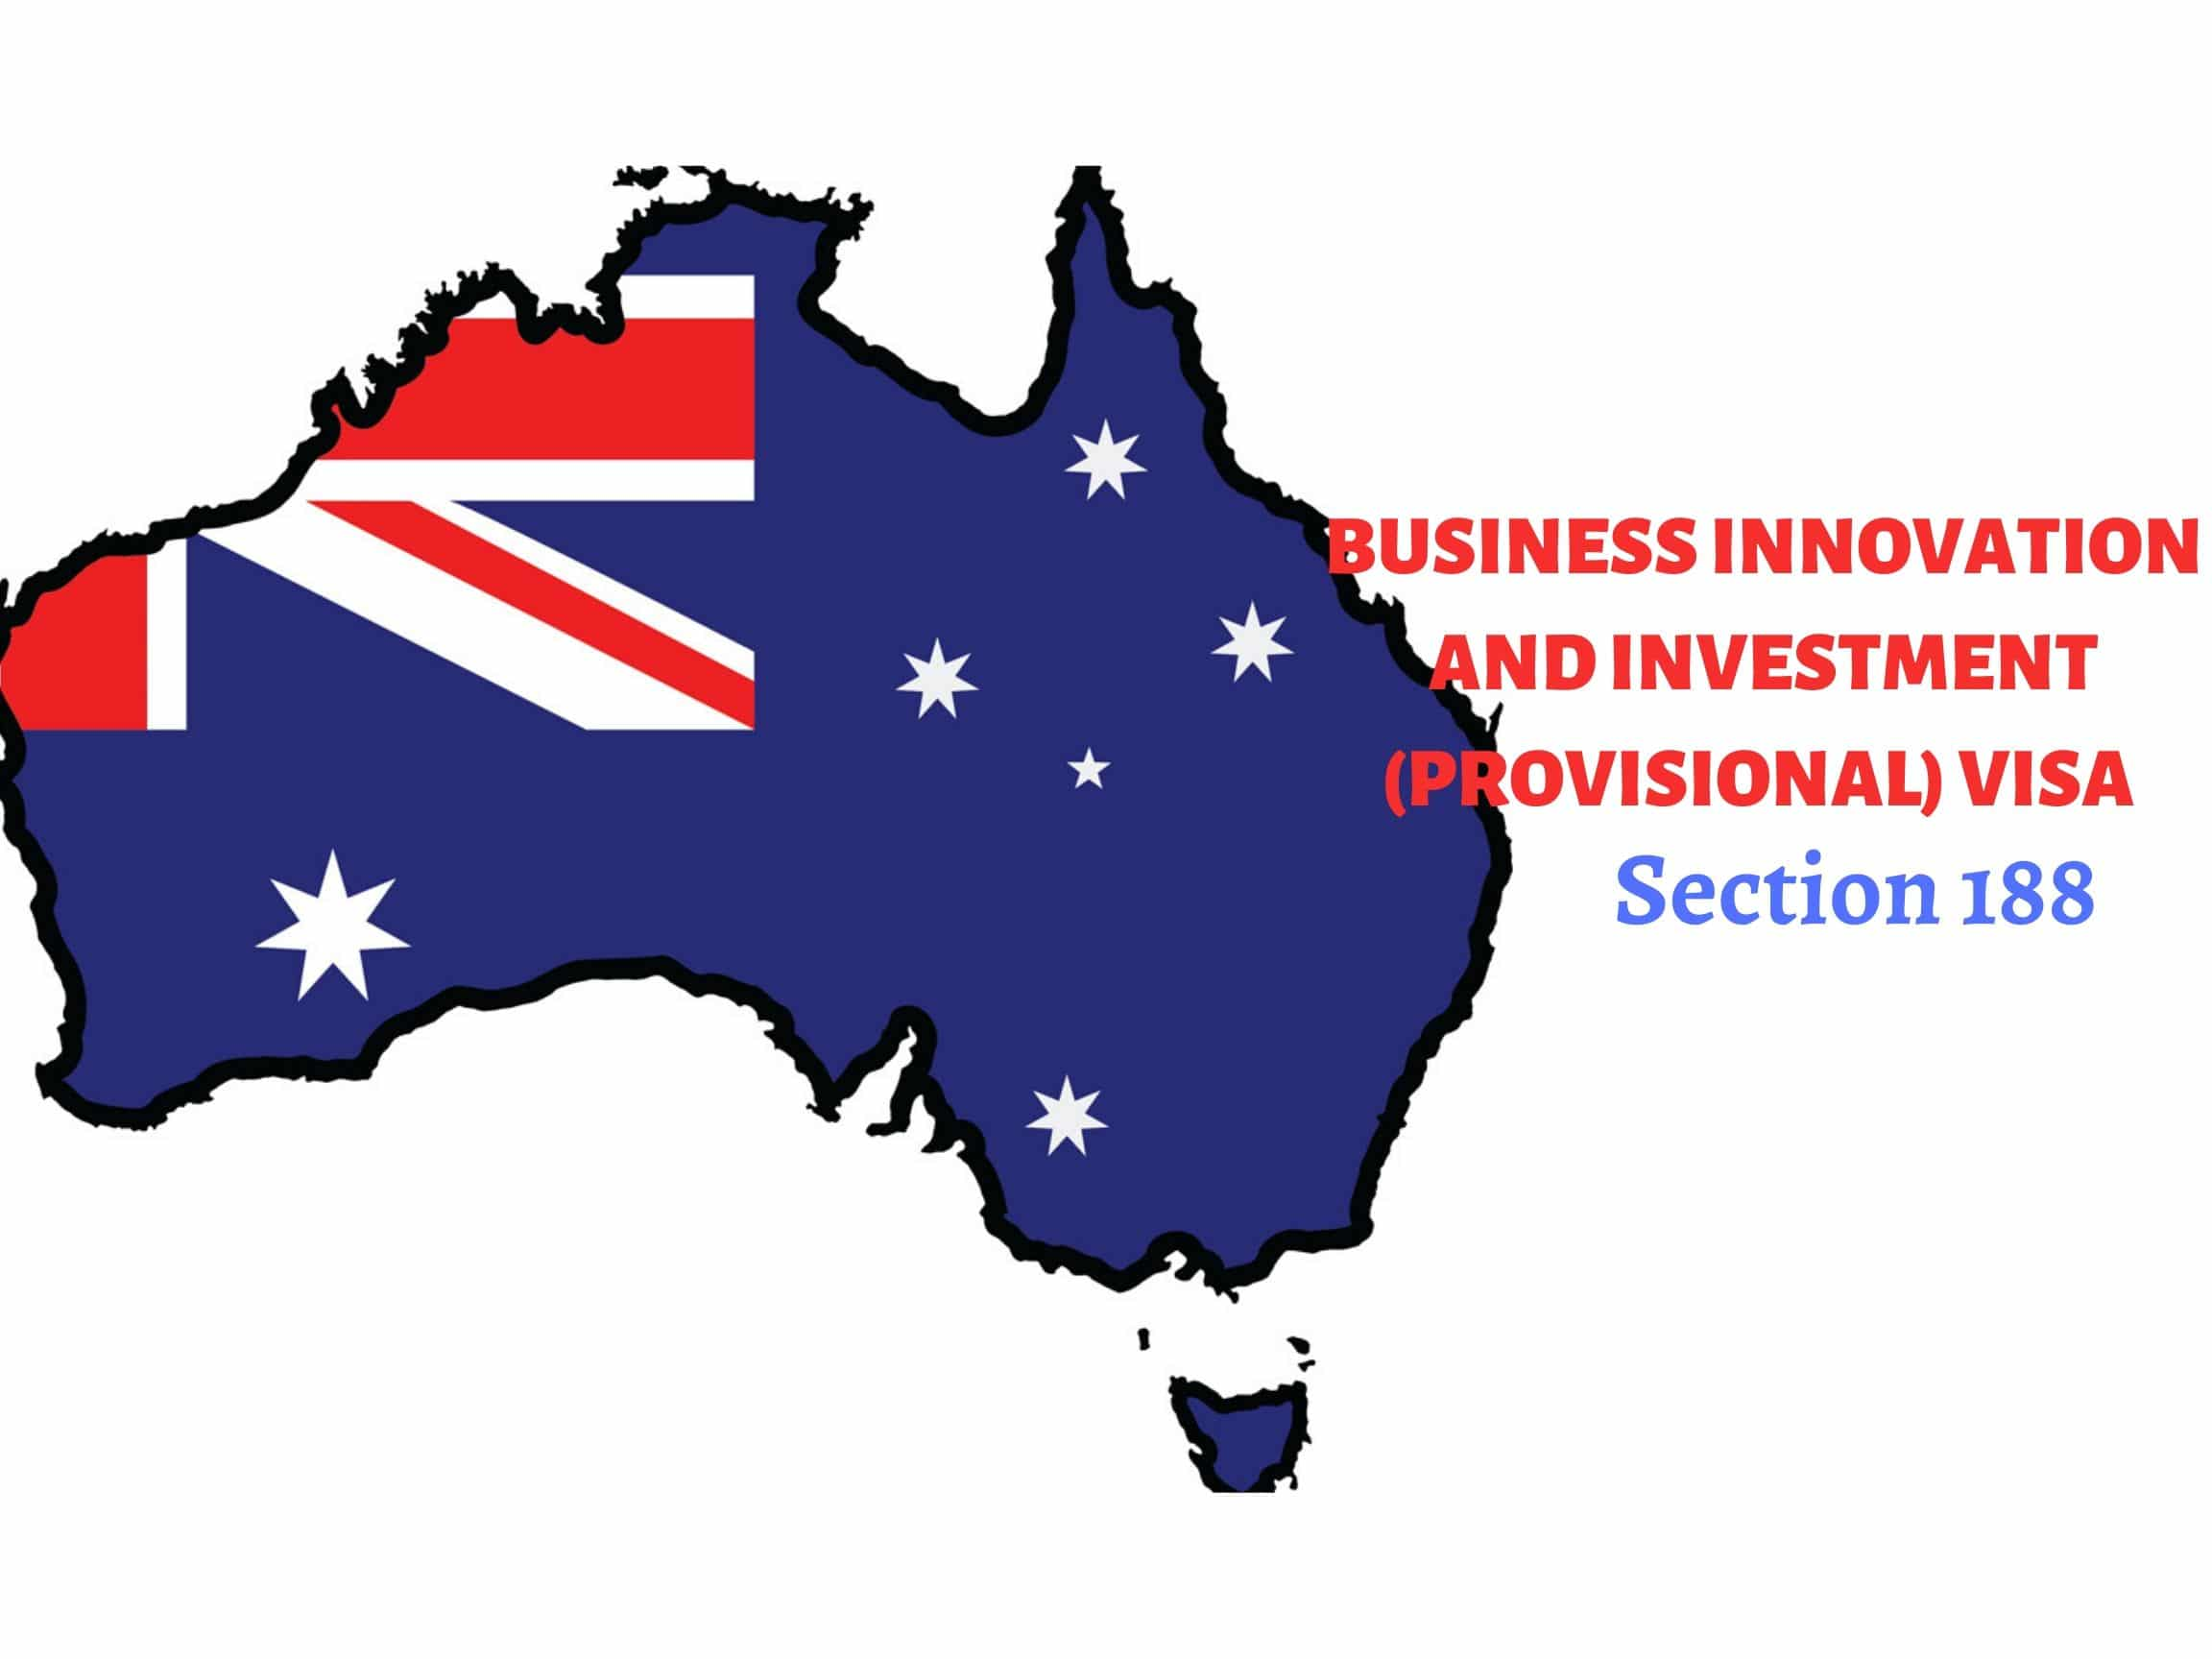 188 Visa – Business Innovation and Investment (Provisional) visa